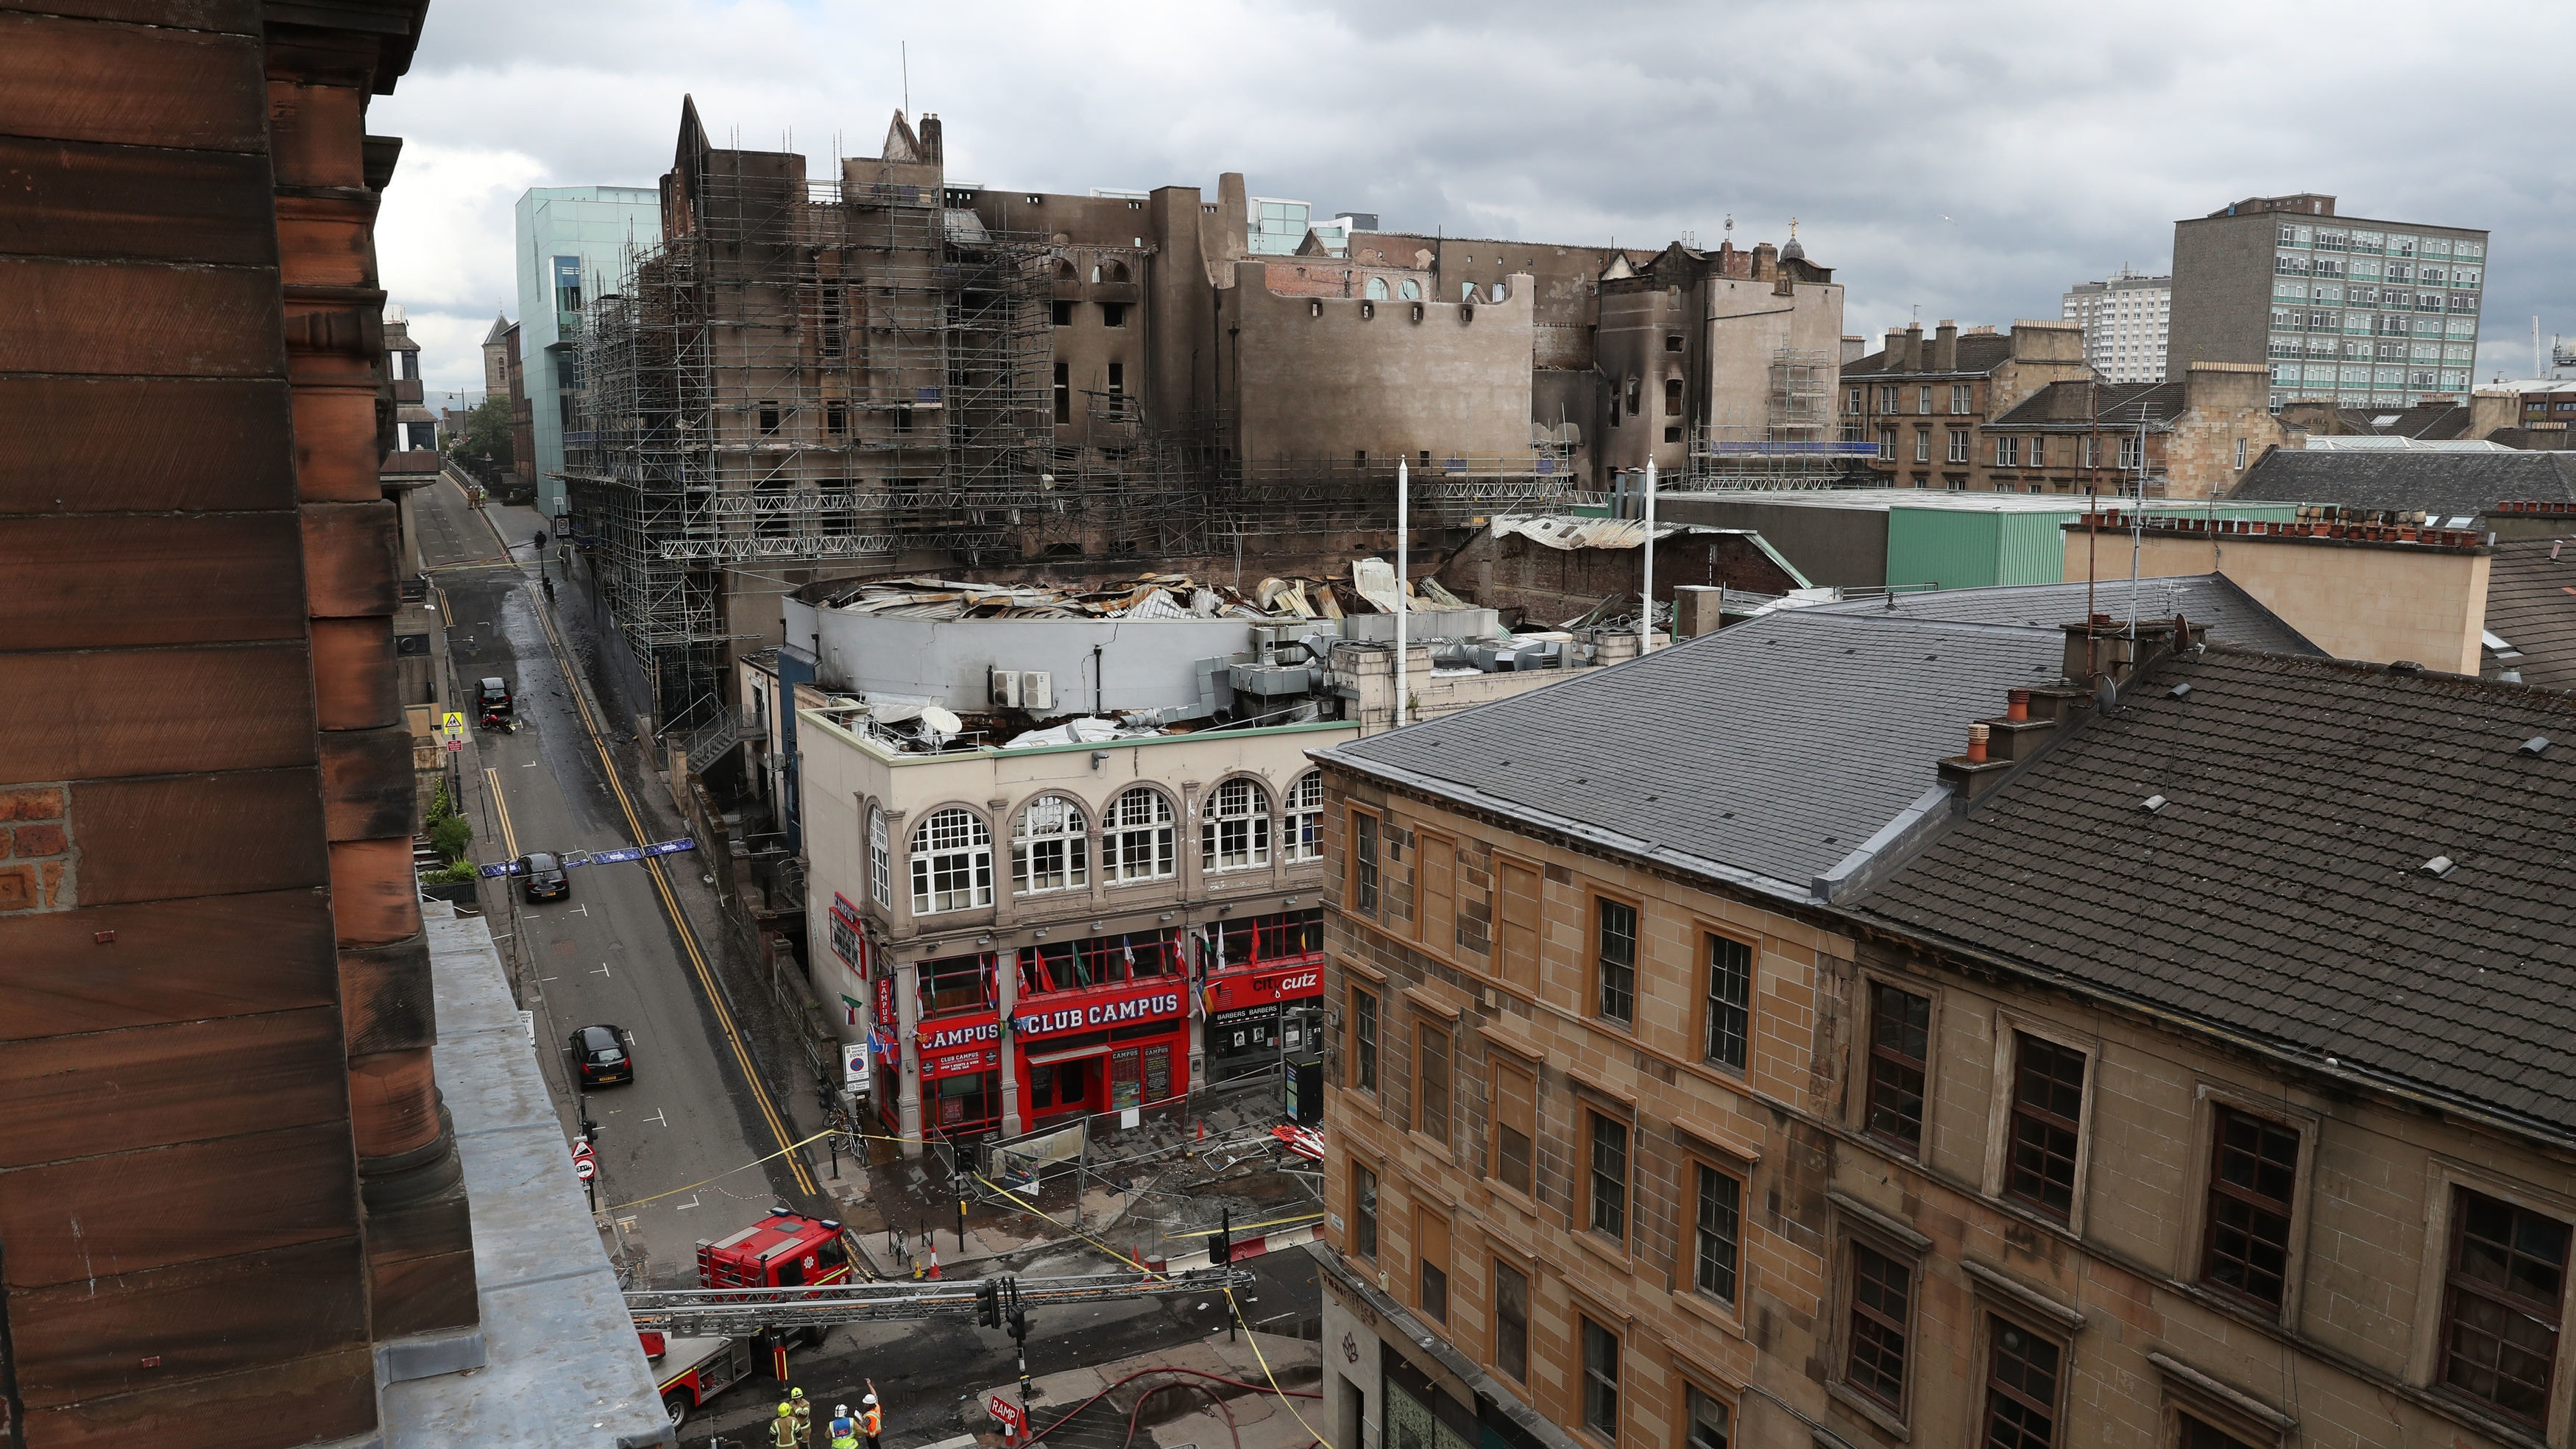 Music Venue And Bar In Line For Demolition After Glasgow School Of